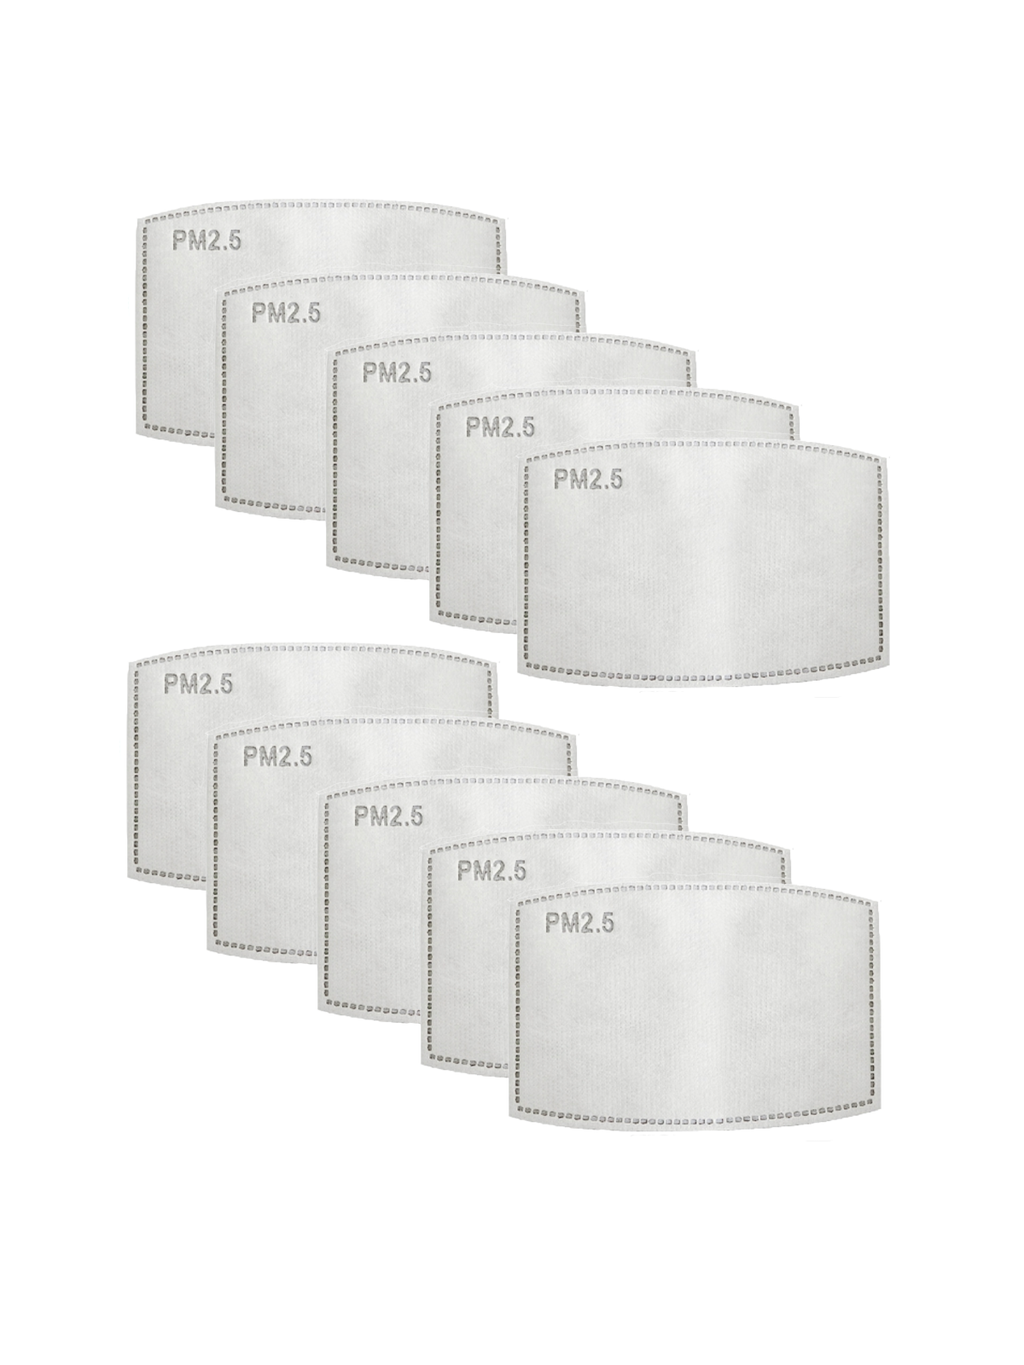 MASK FILTER BUNDLE OF 10